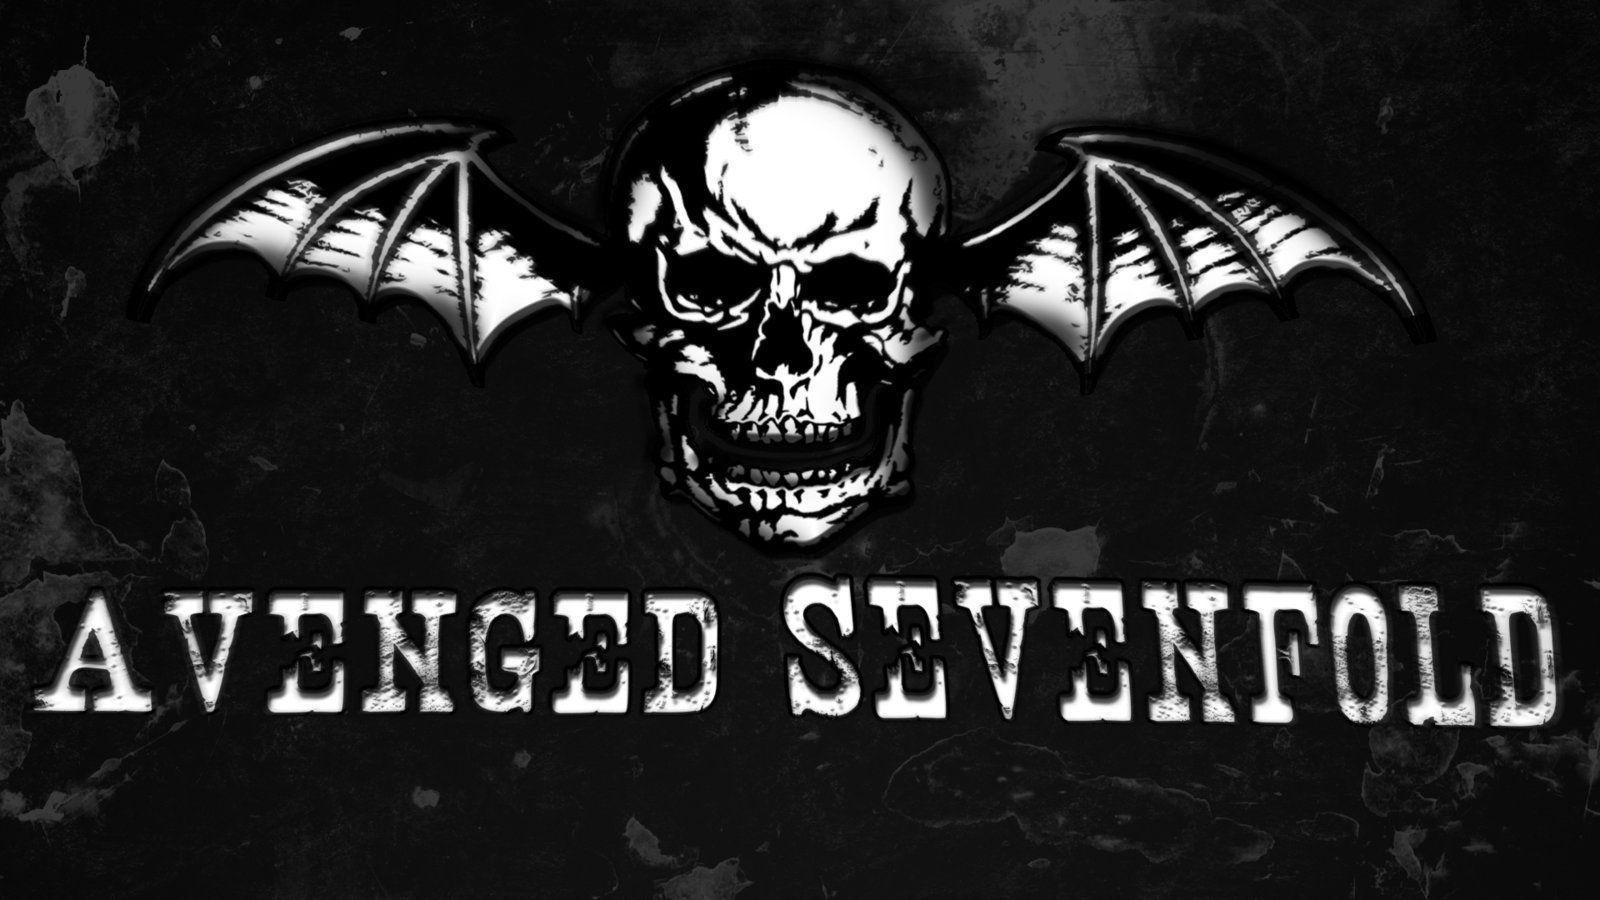 Avenged sevenfold wallpapers wallpaper cave hail to the king avenged sevenfold wallpaper by chaotichazard on voltagebd Gallery